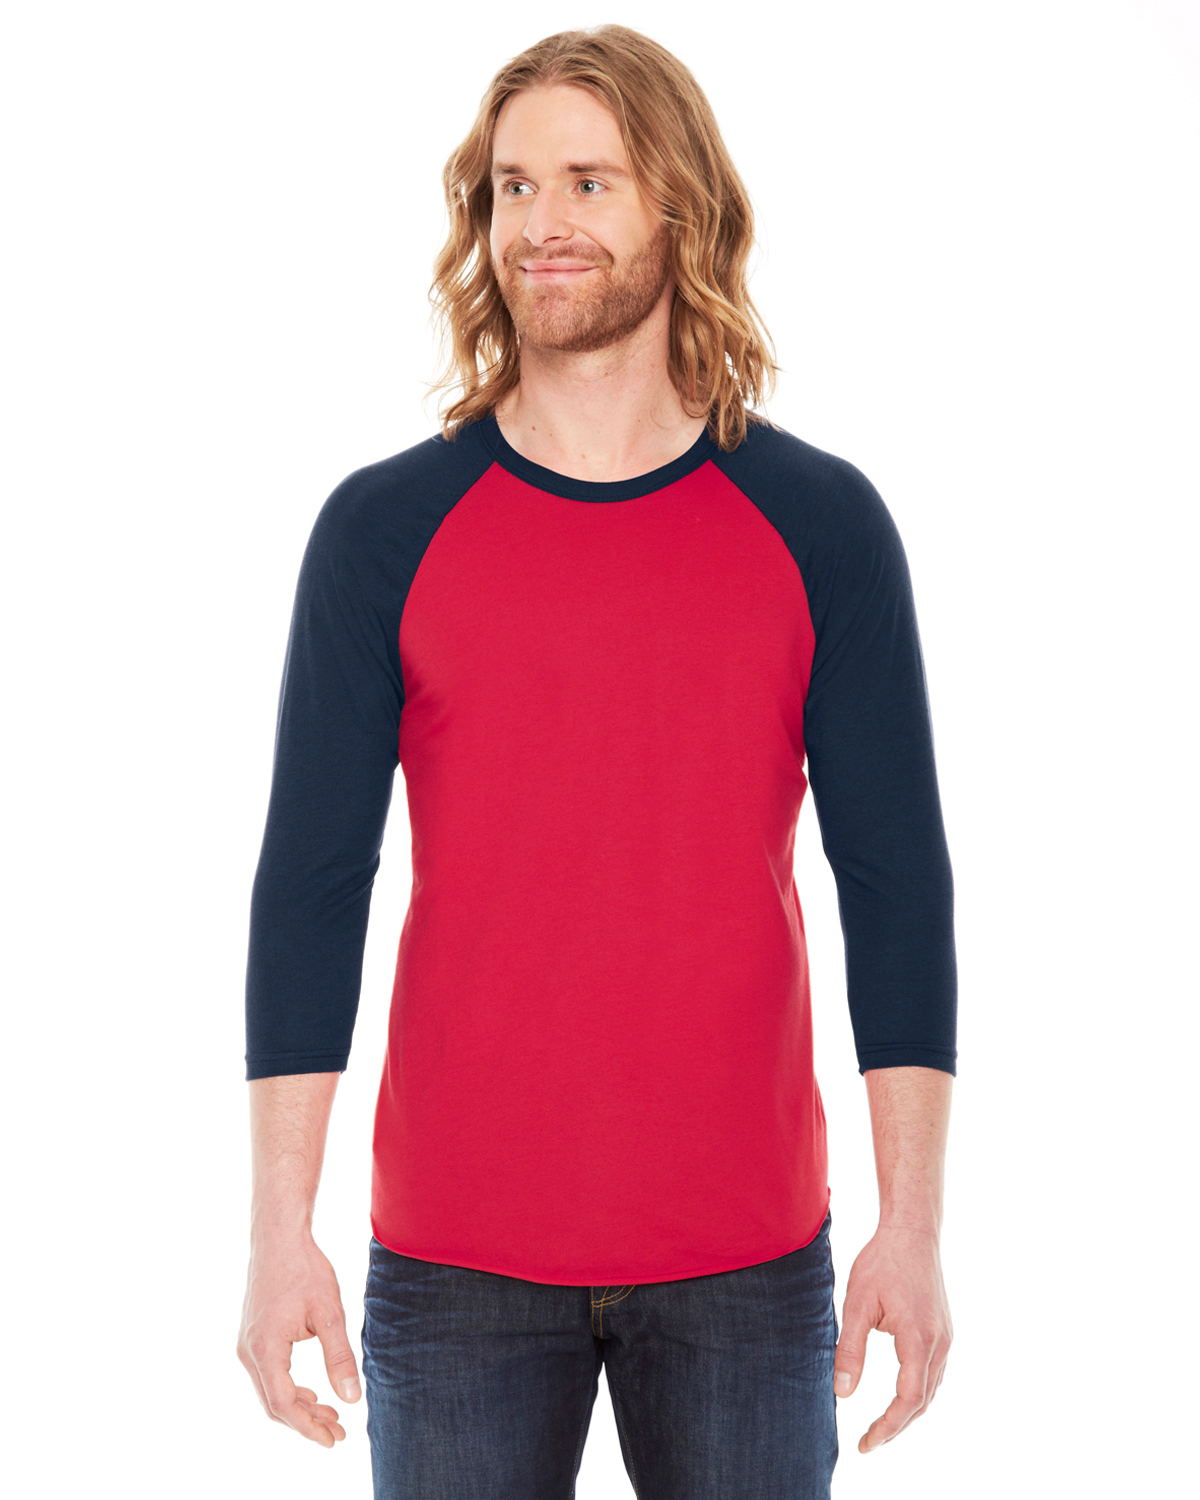 click to view Red/ Navy